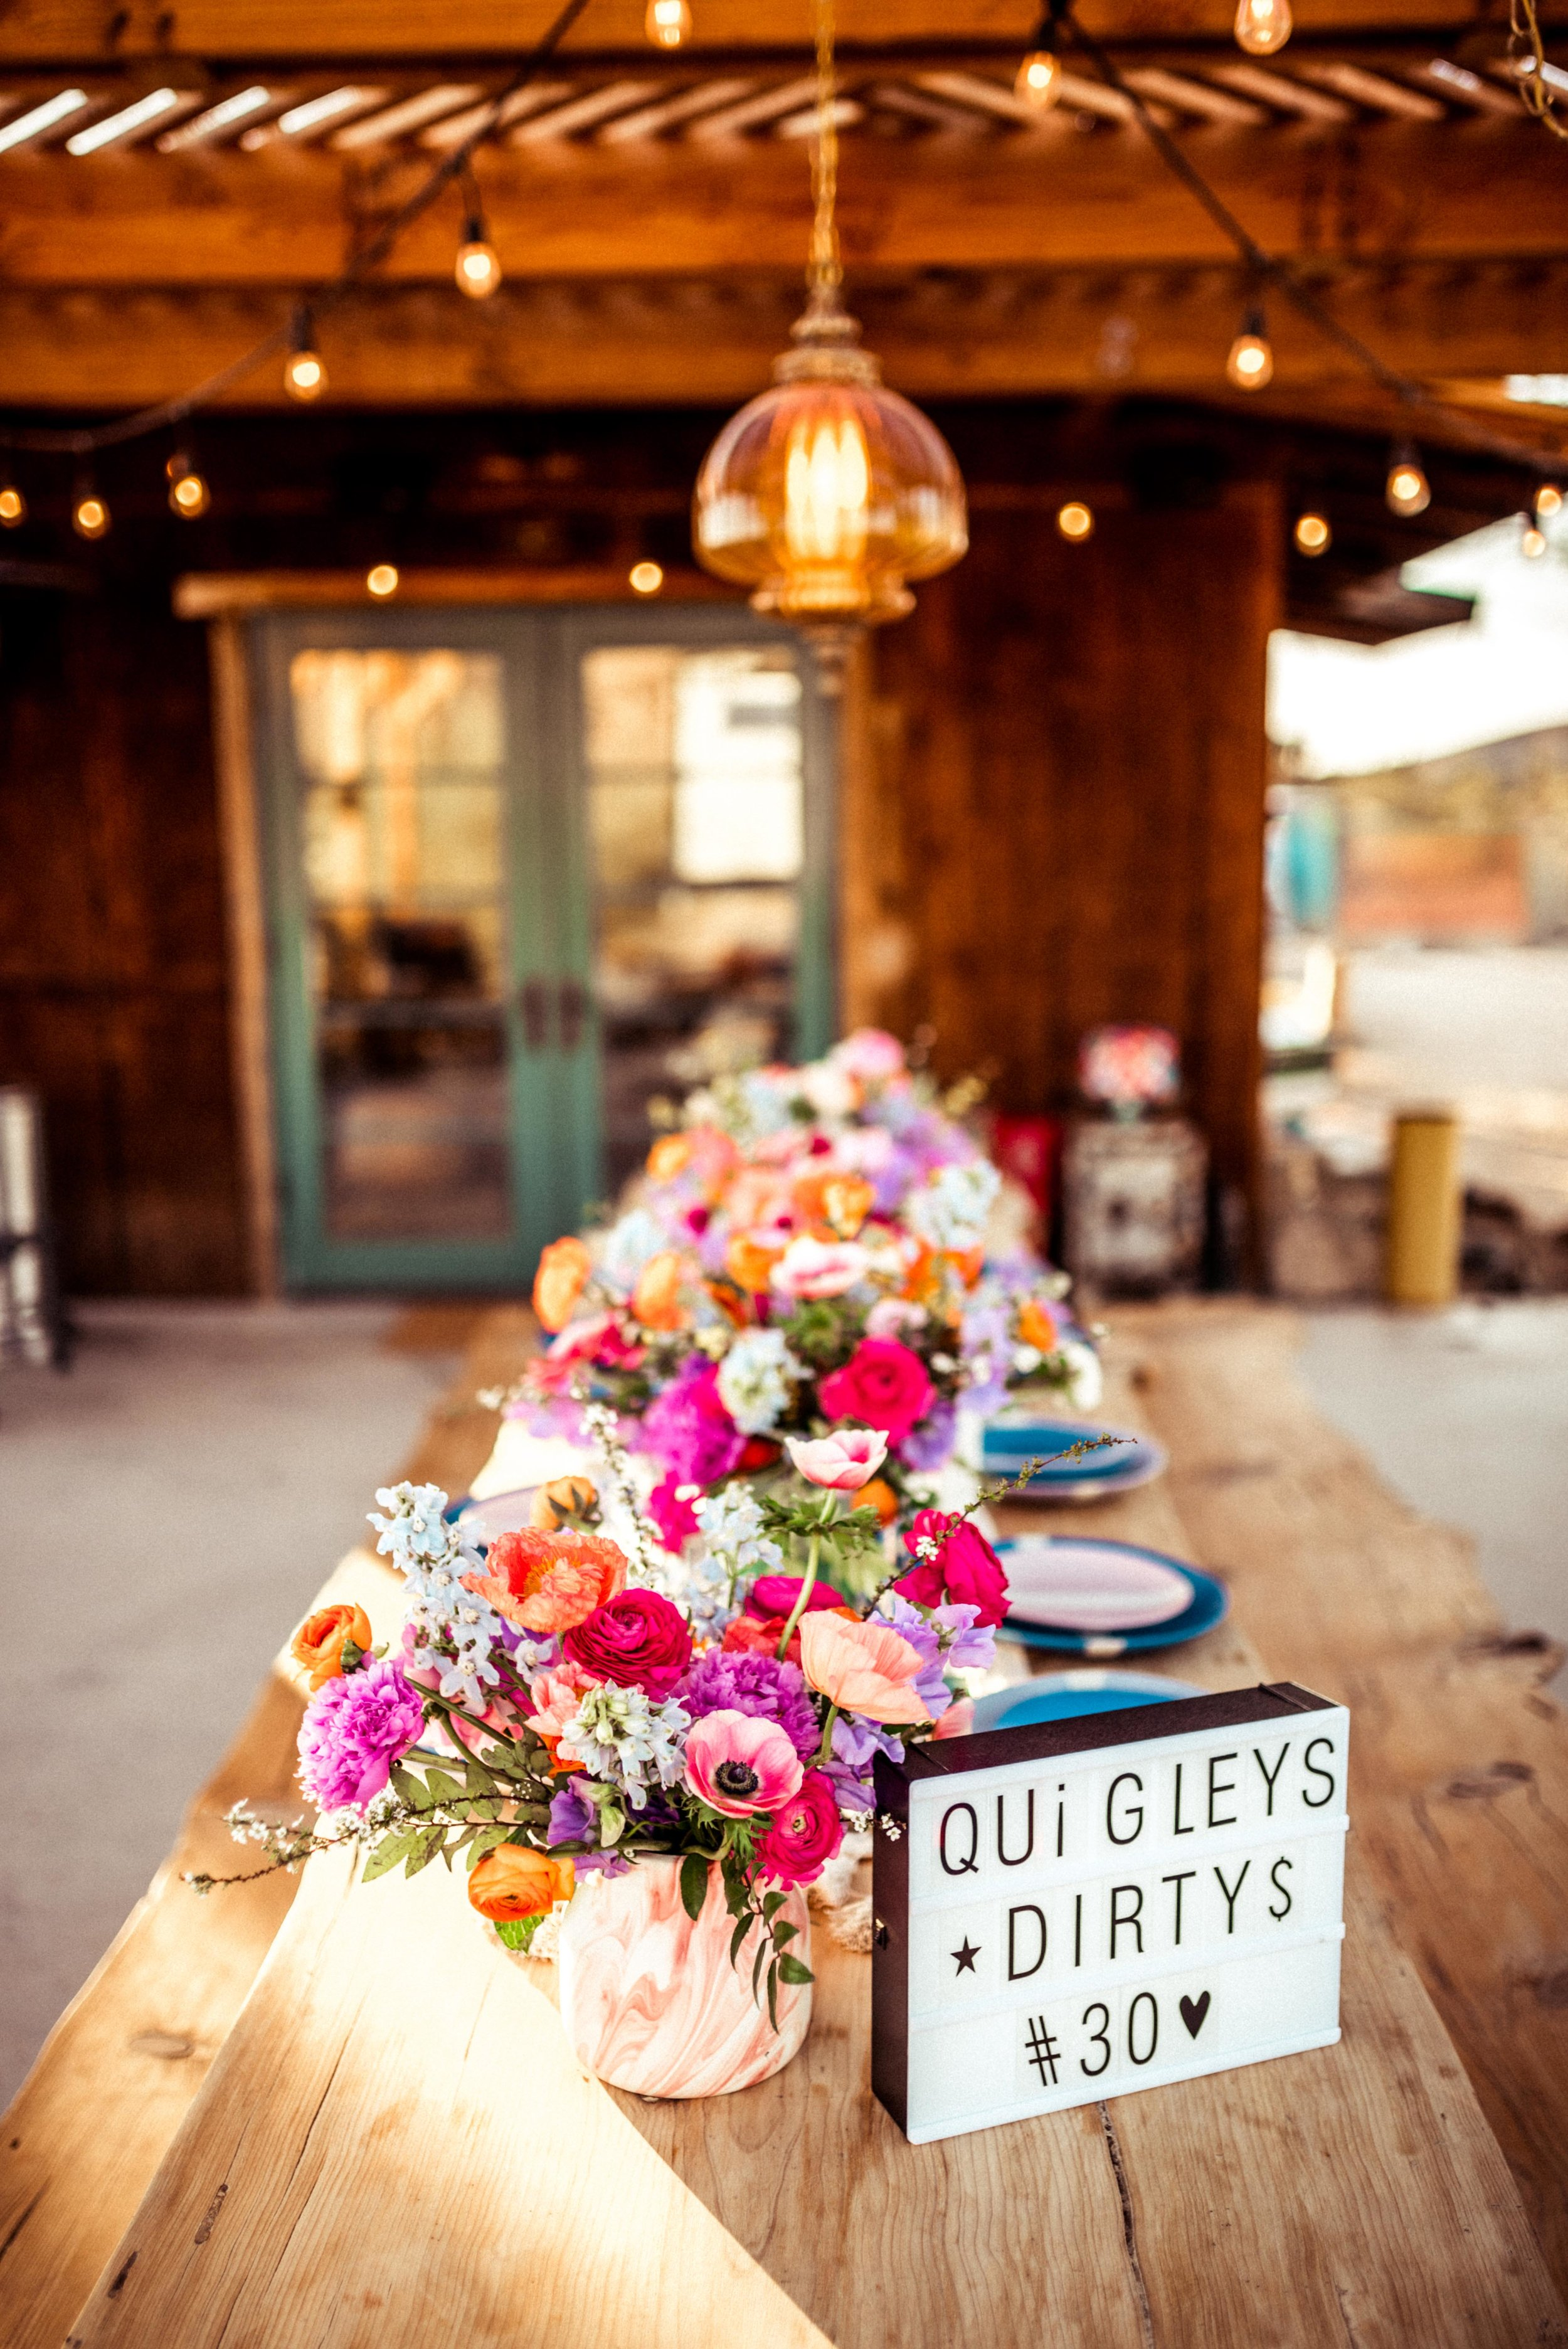 Officially Quigley x Anthropologie